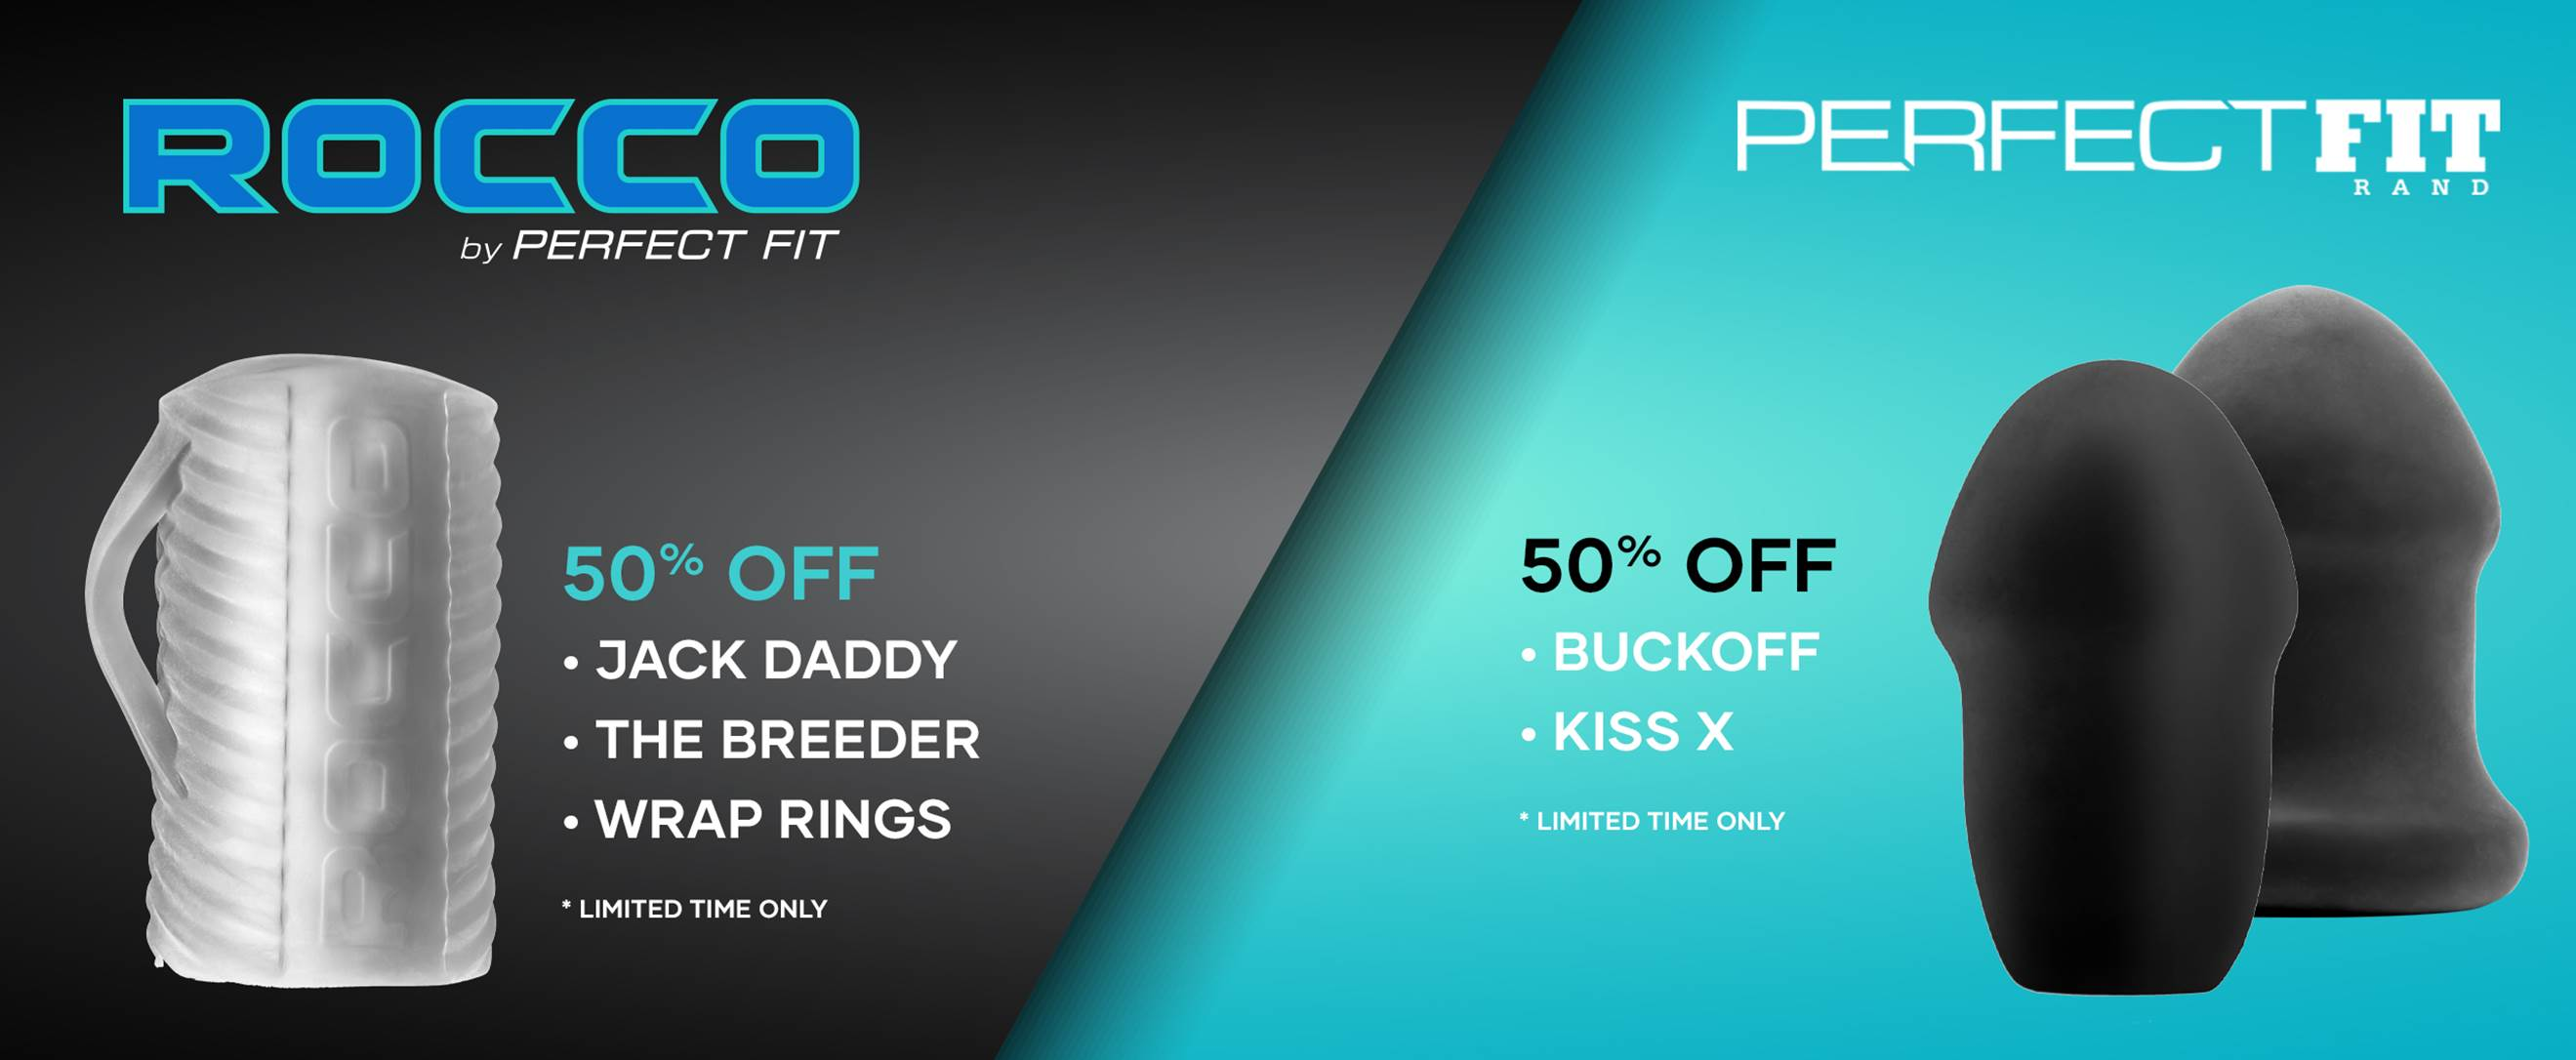 50% Off All Rocco & Buck Angel Products